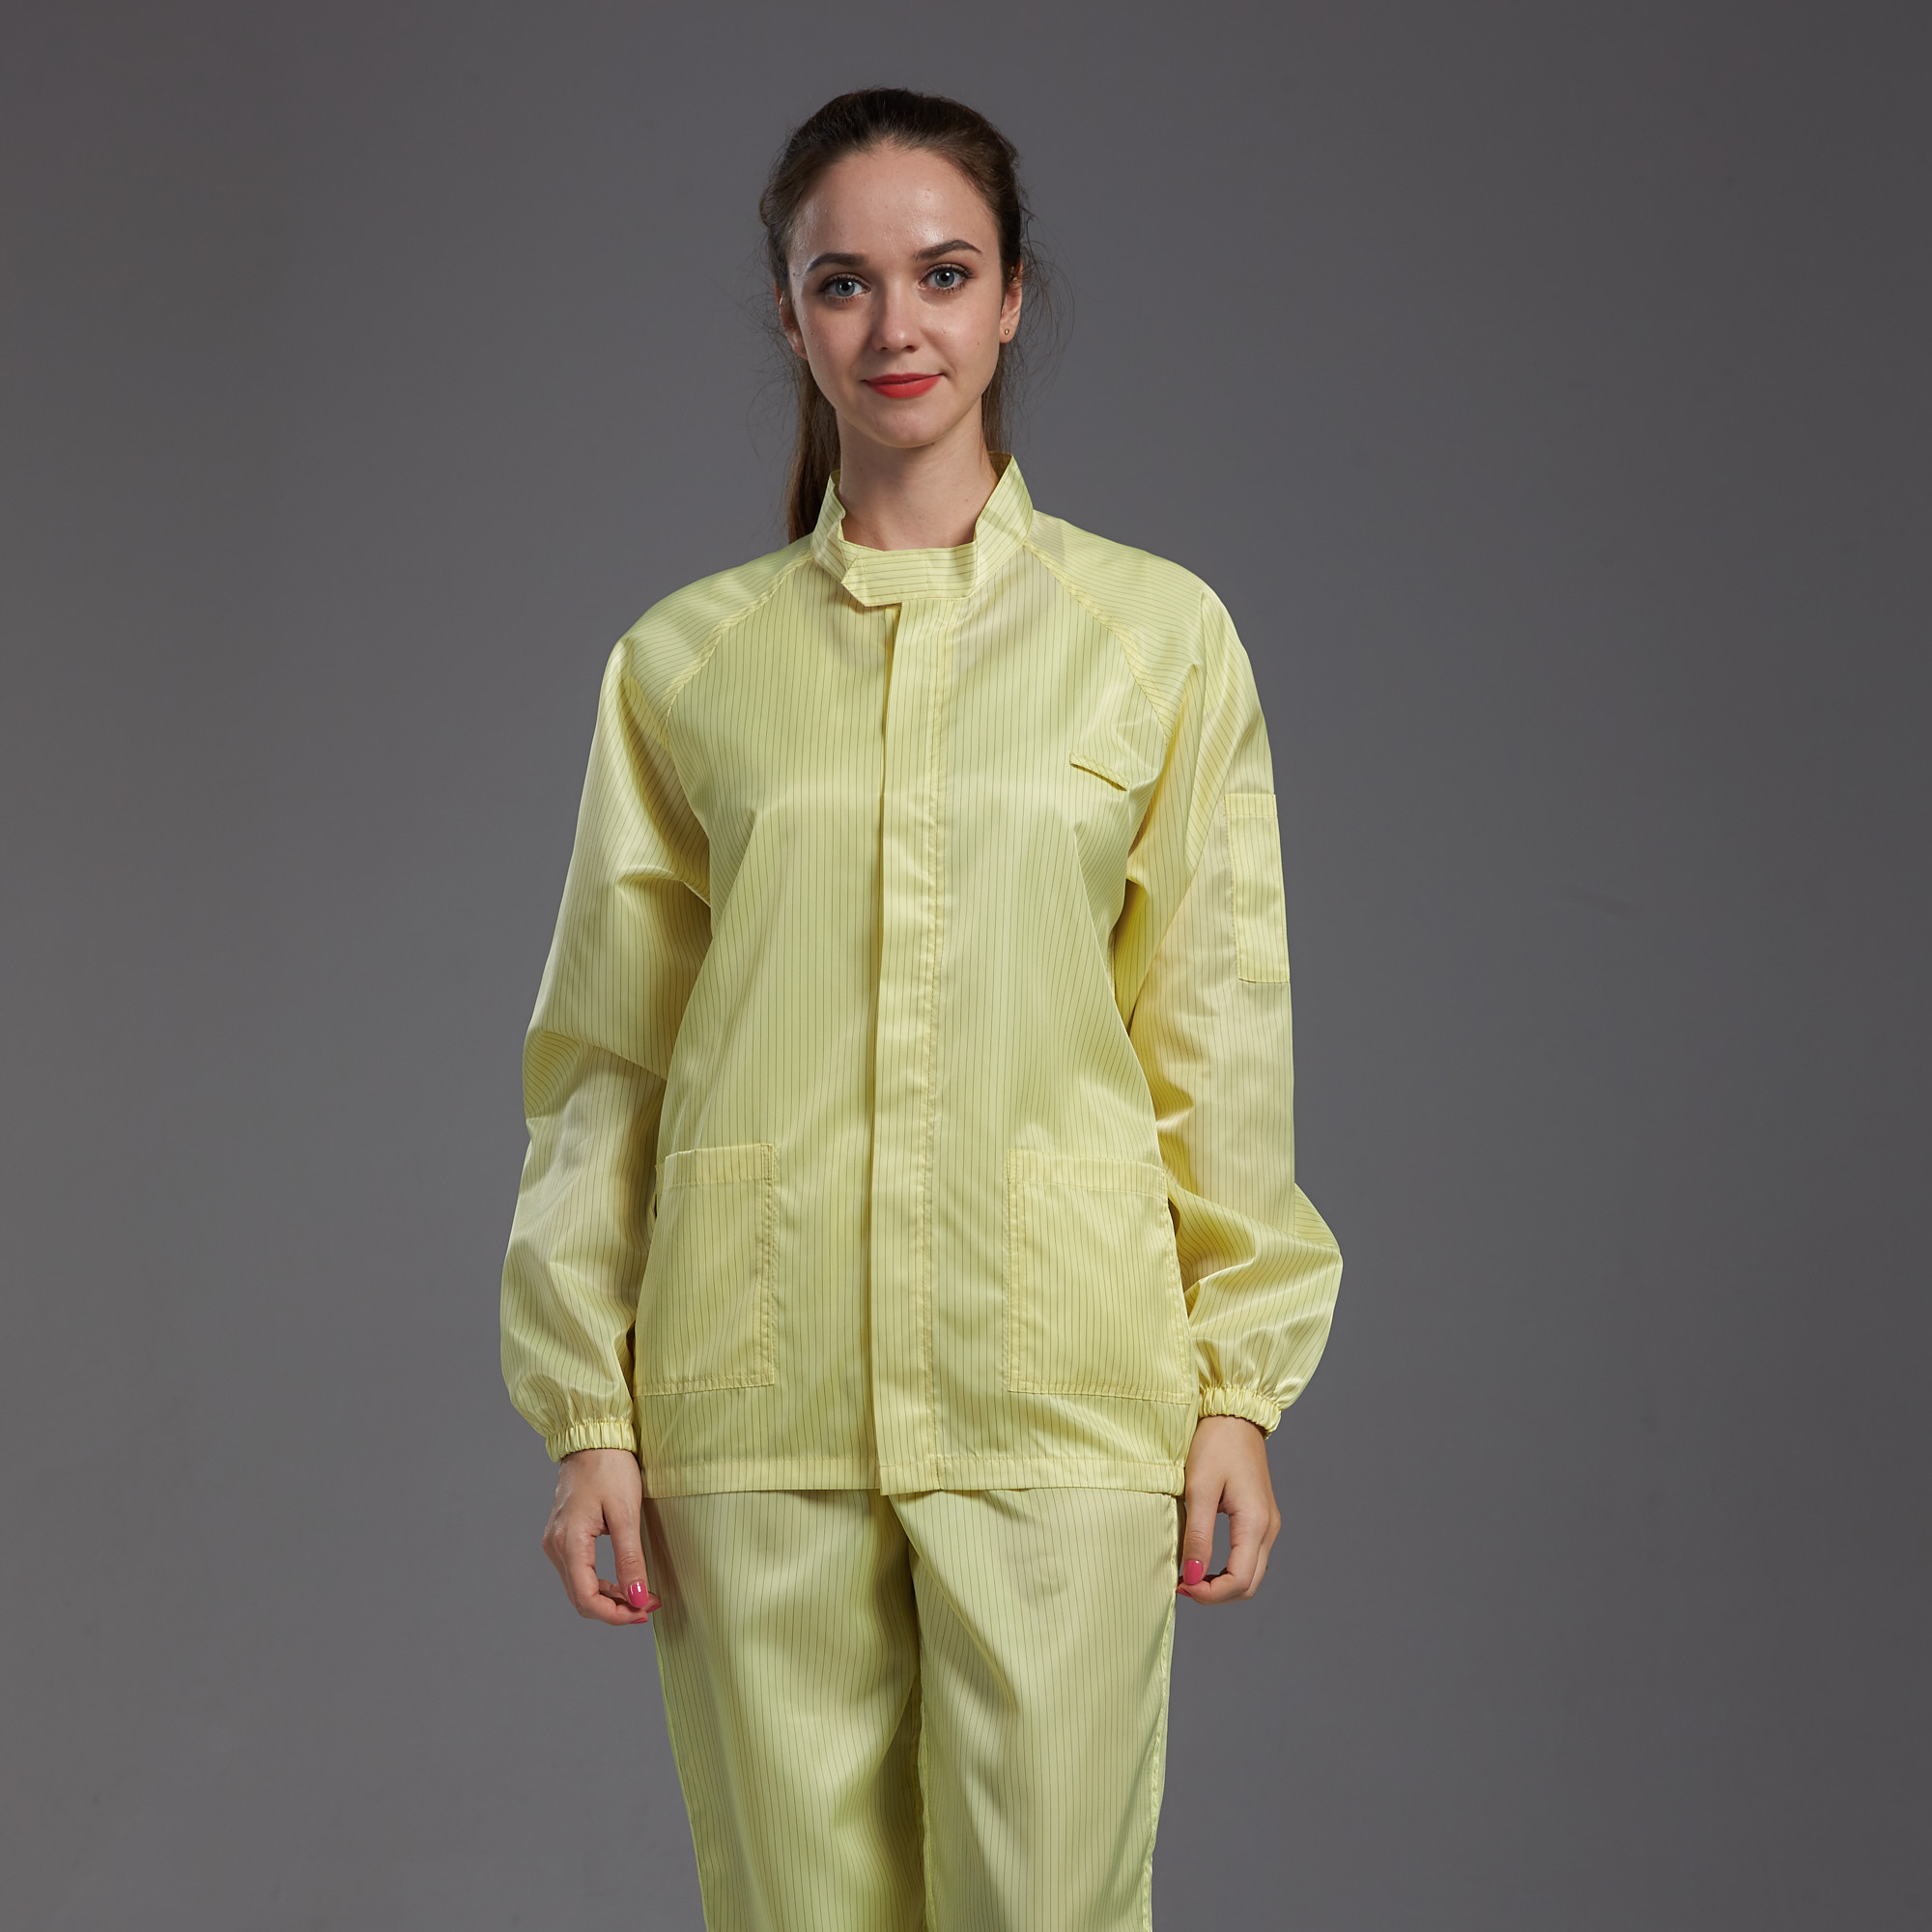 Polyester reusable non-sterile cleanroom clothing set top bottom non-sterile waterproof anti-static 95gsm - KingCare | KingCare.net